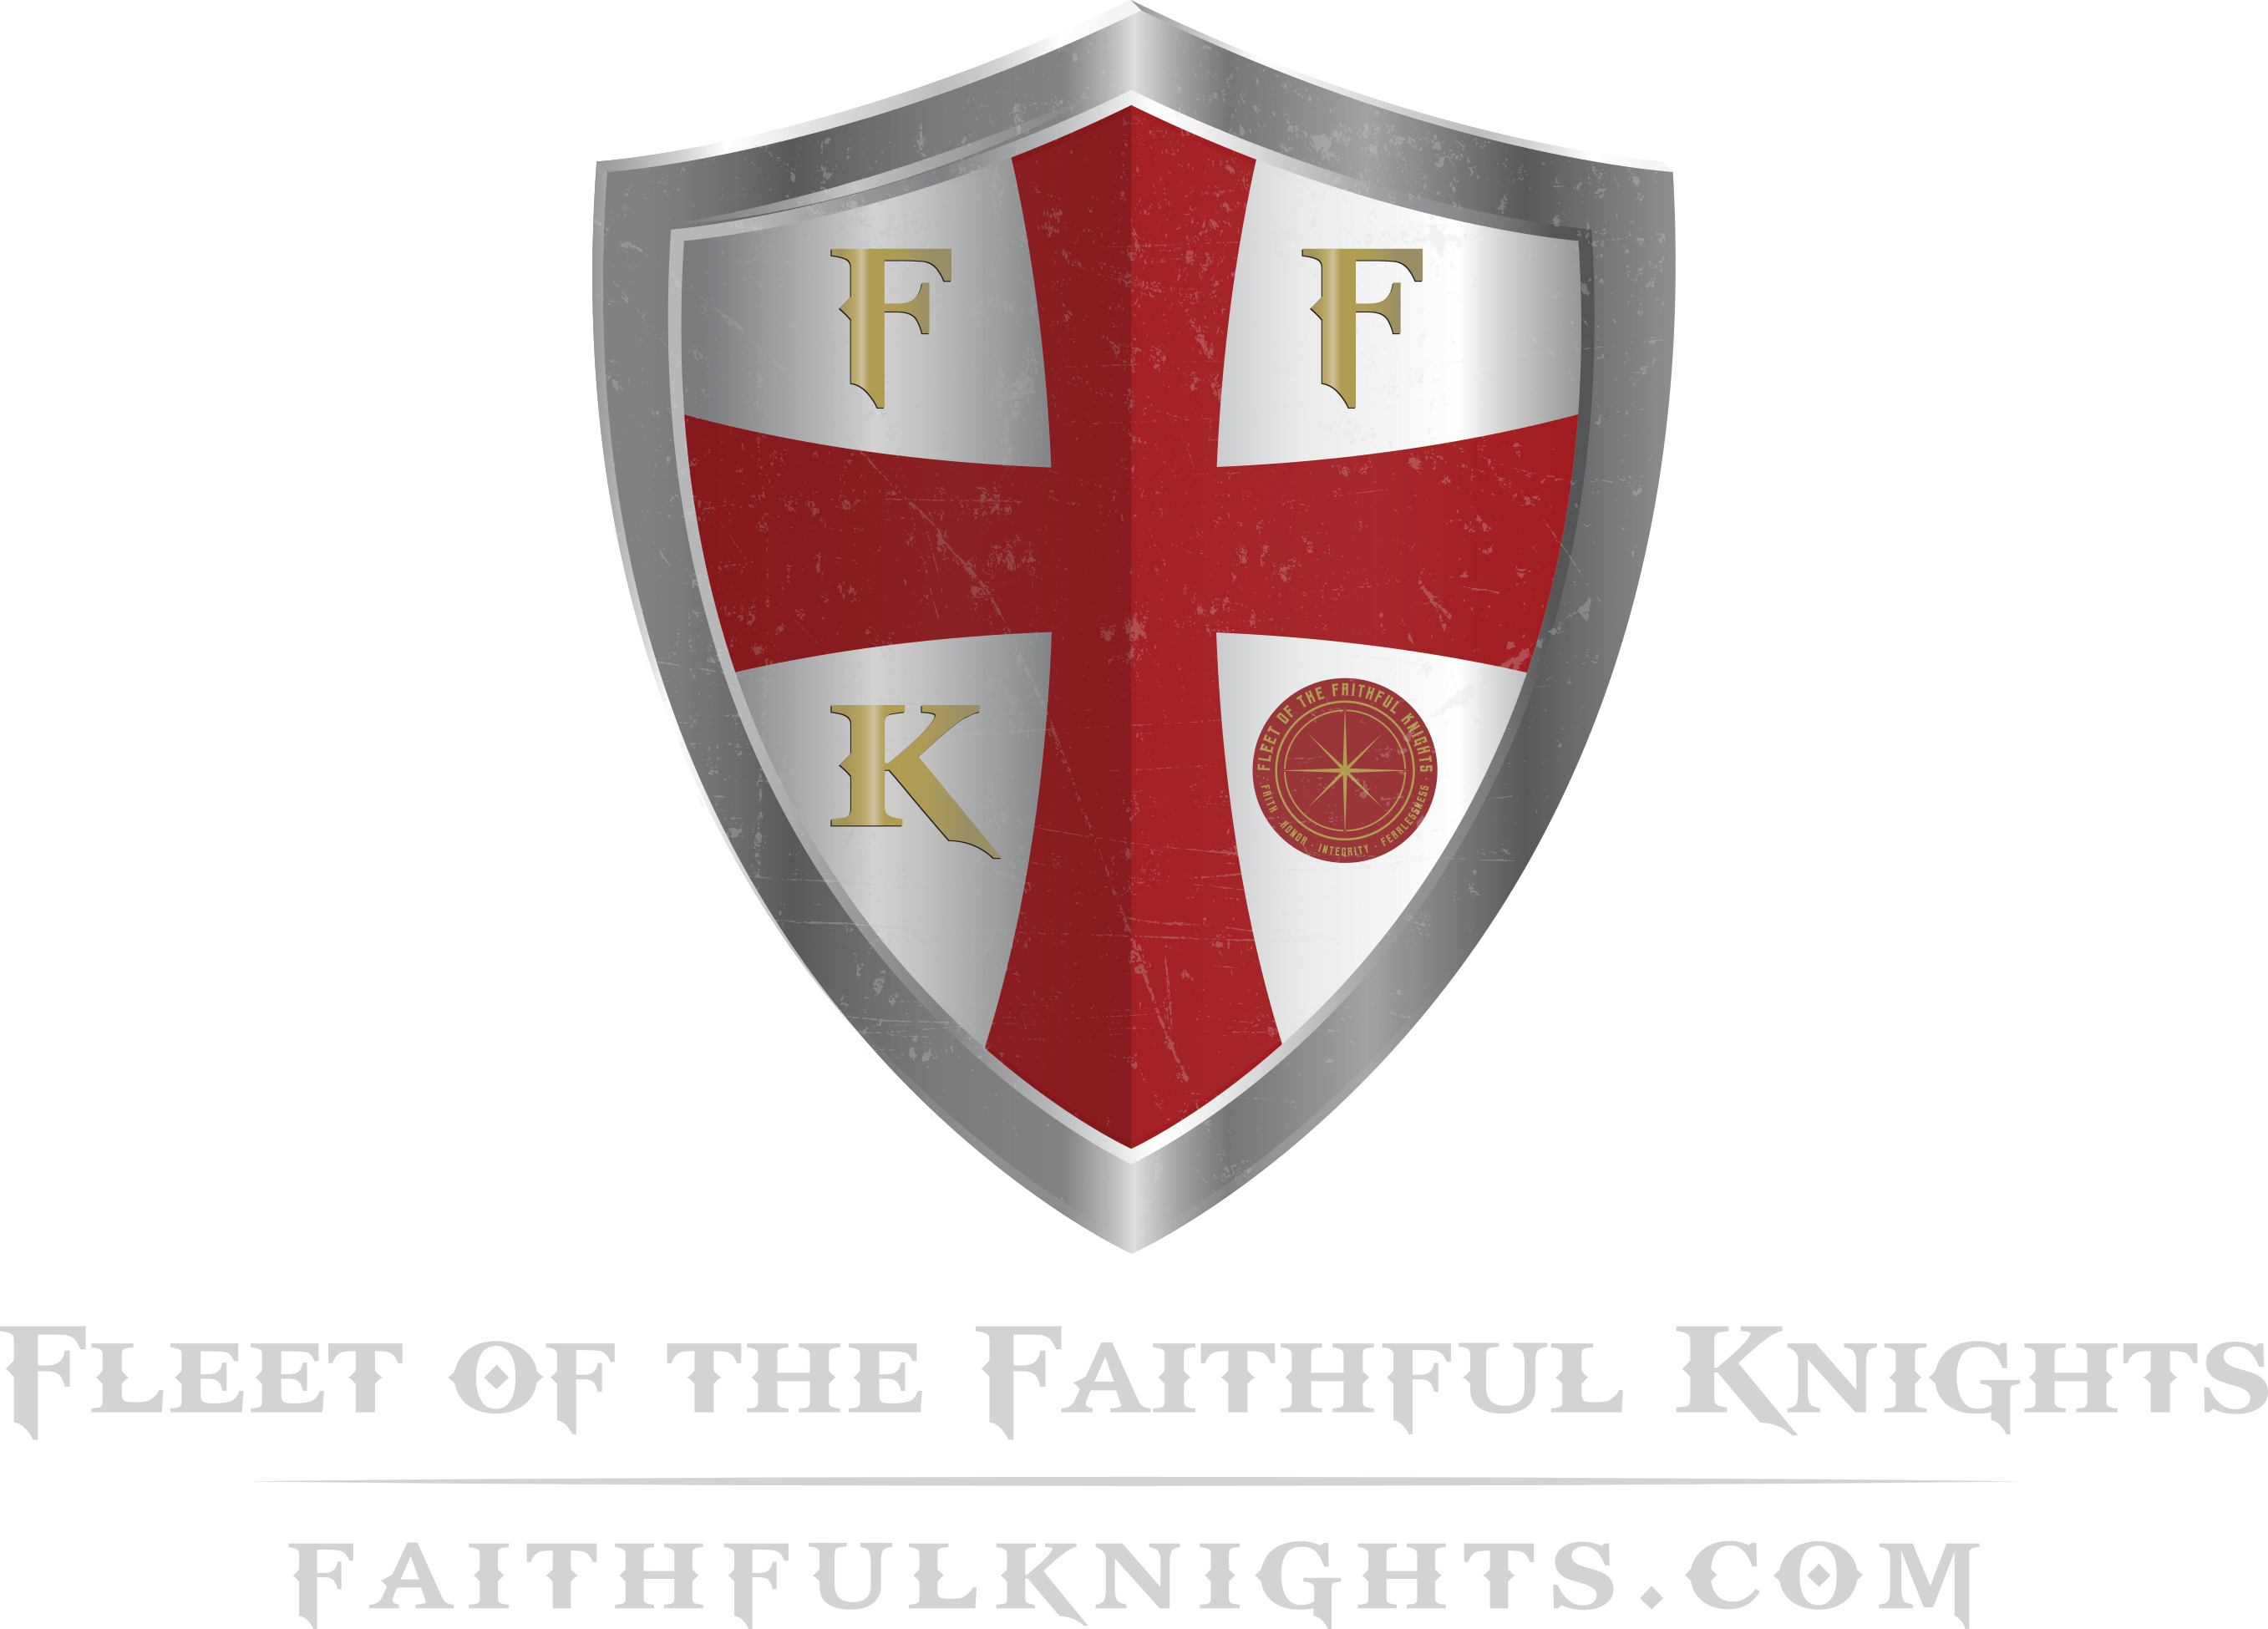 Large fleet of the faithful knights logo final white text